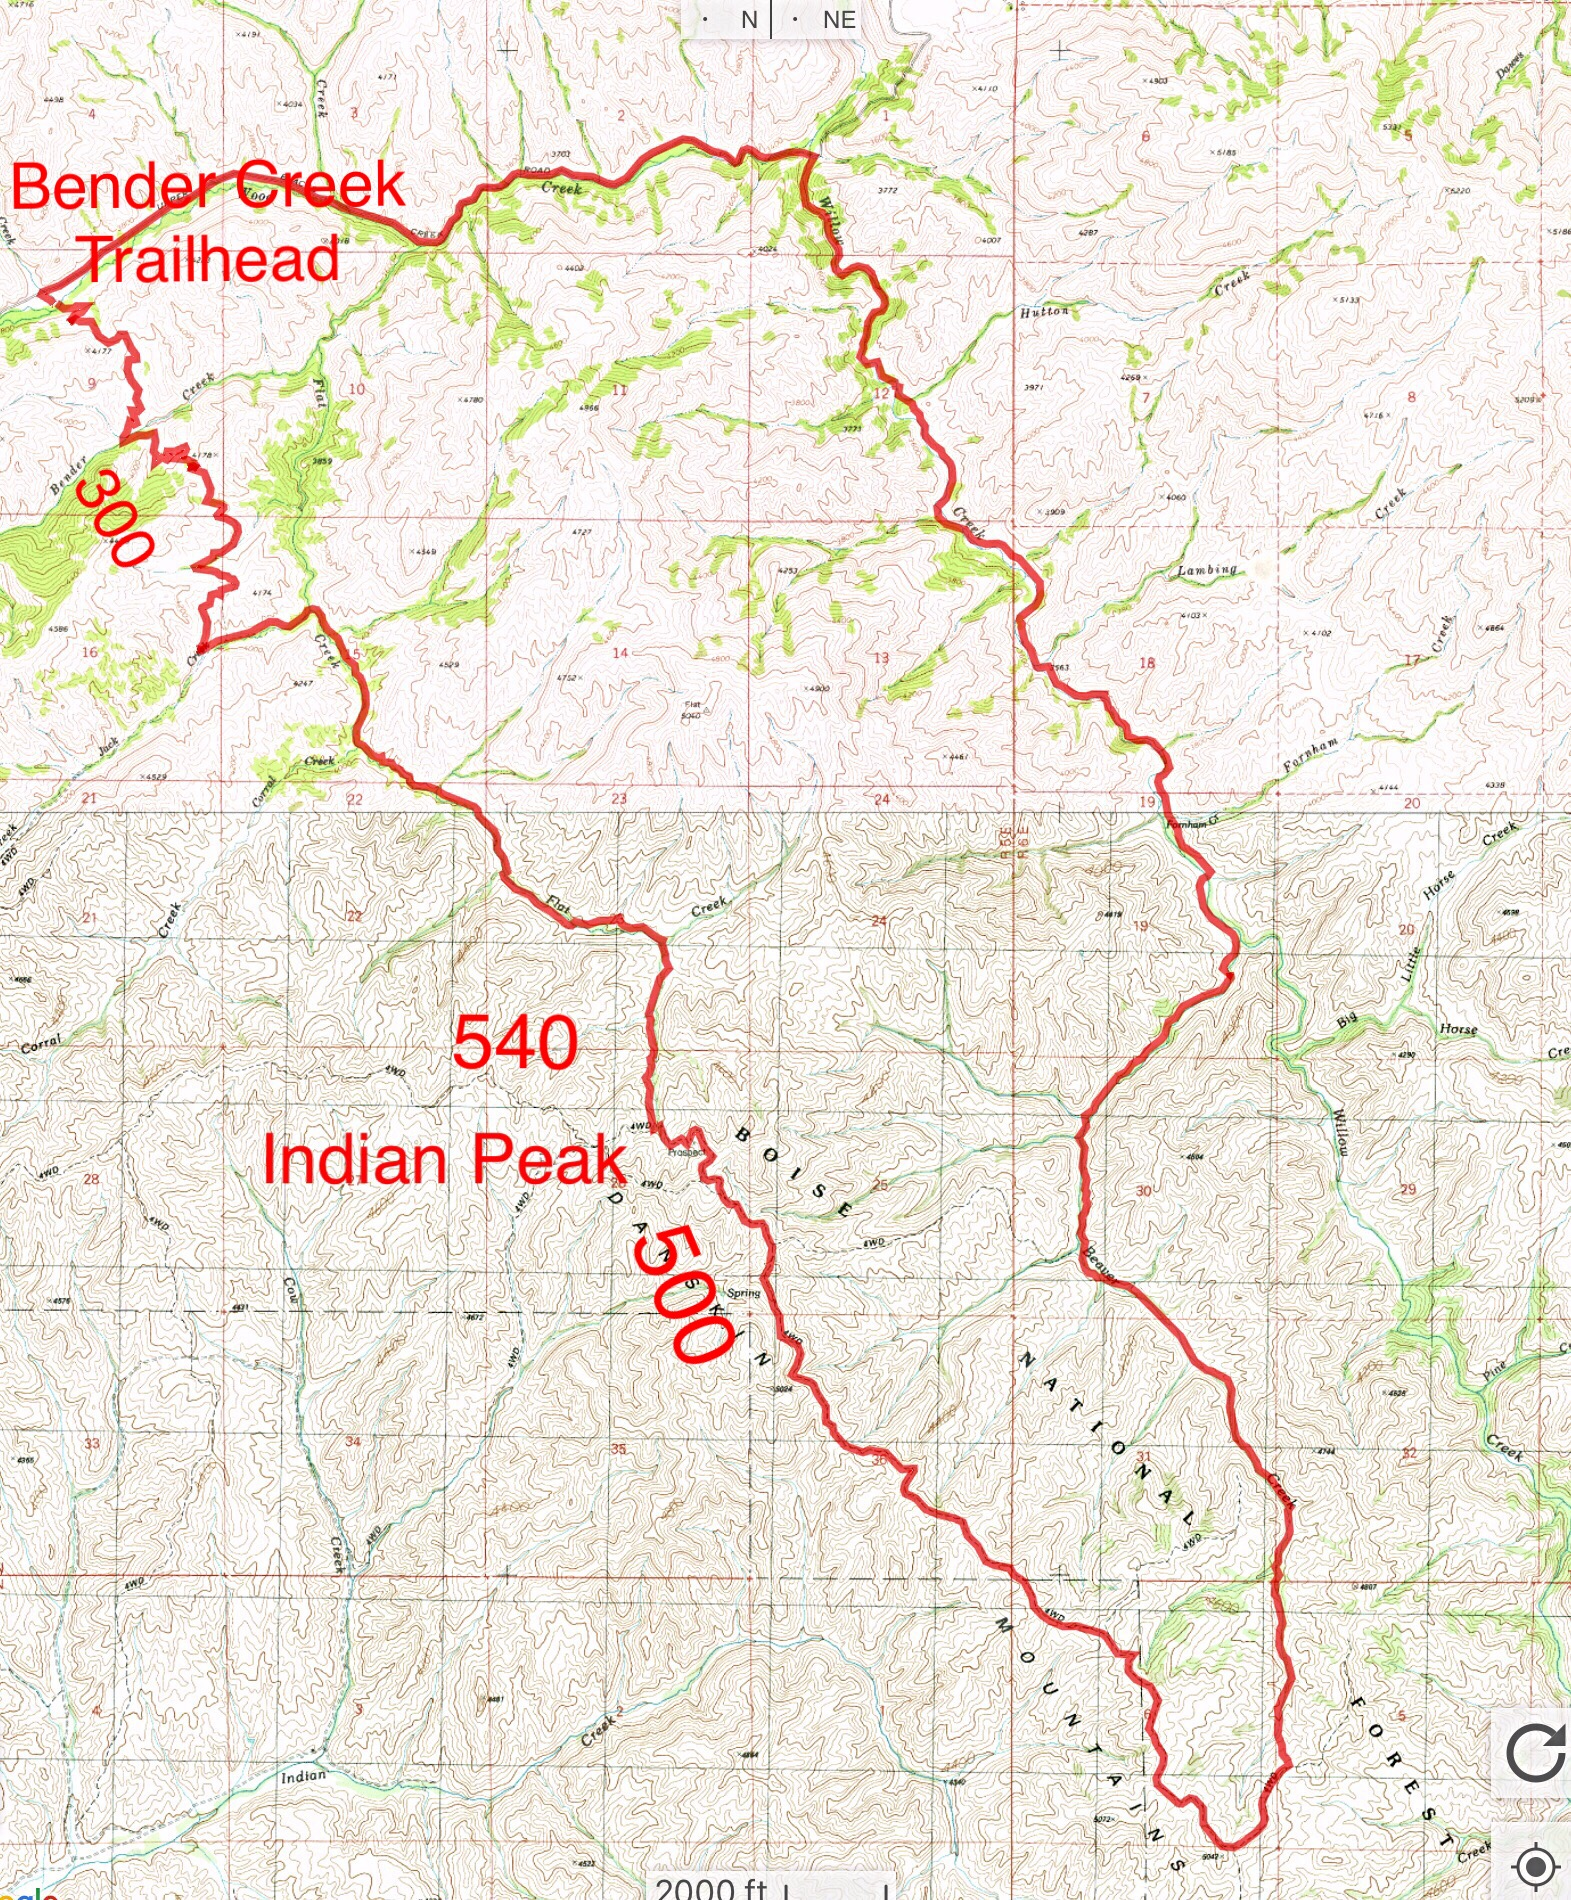 Trails for accessing Indian Peak.